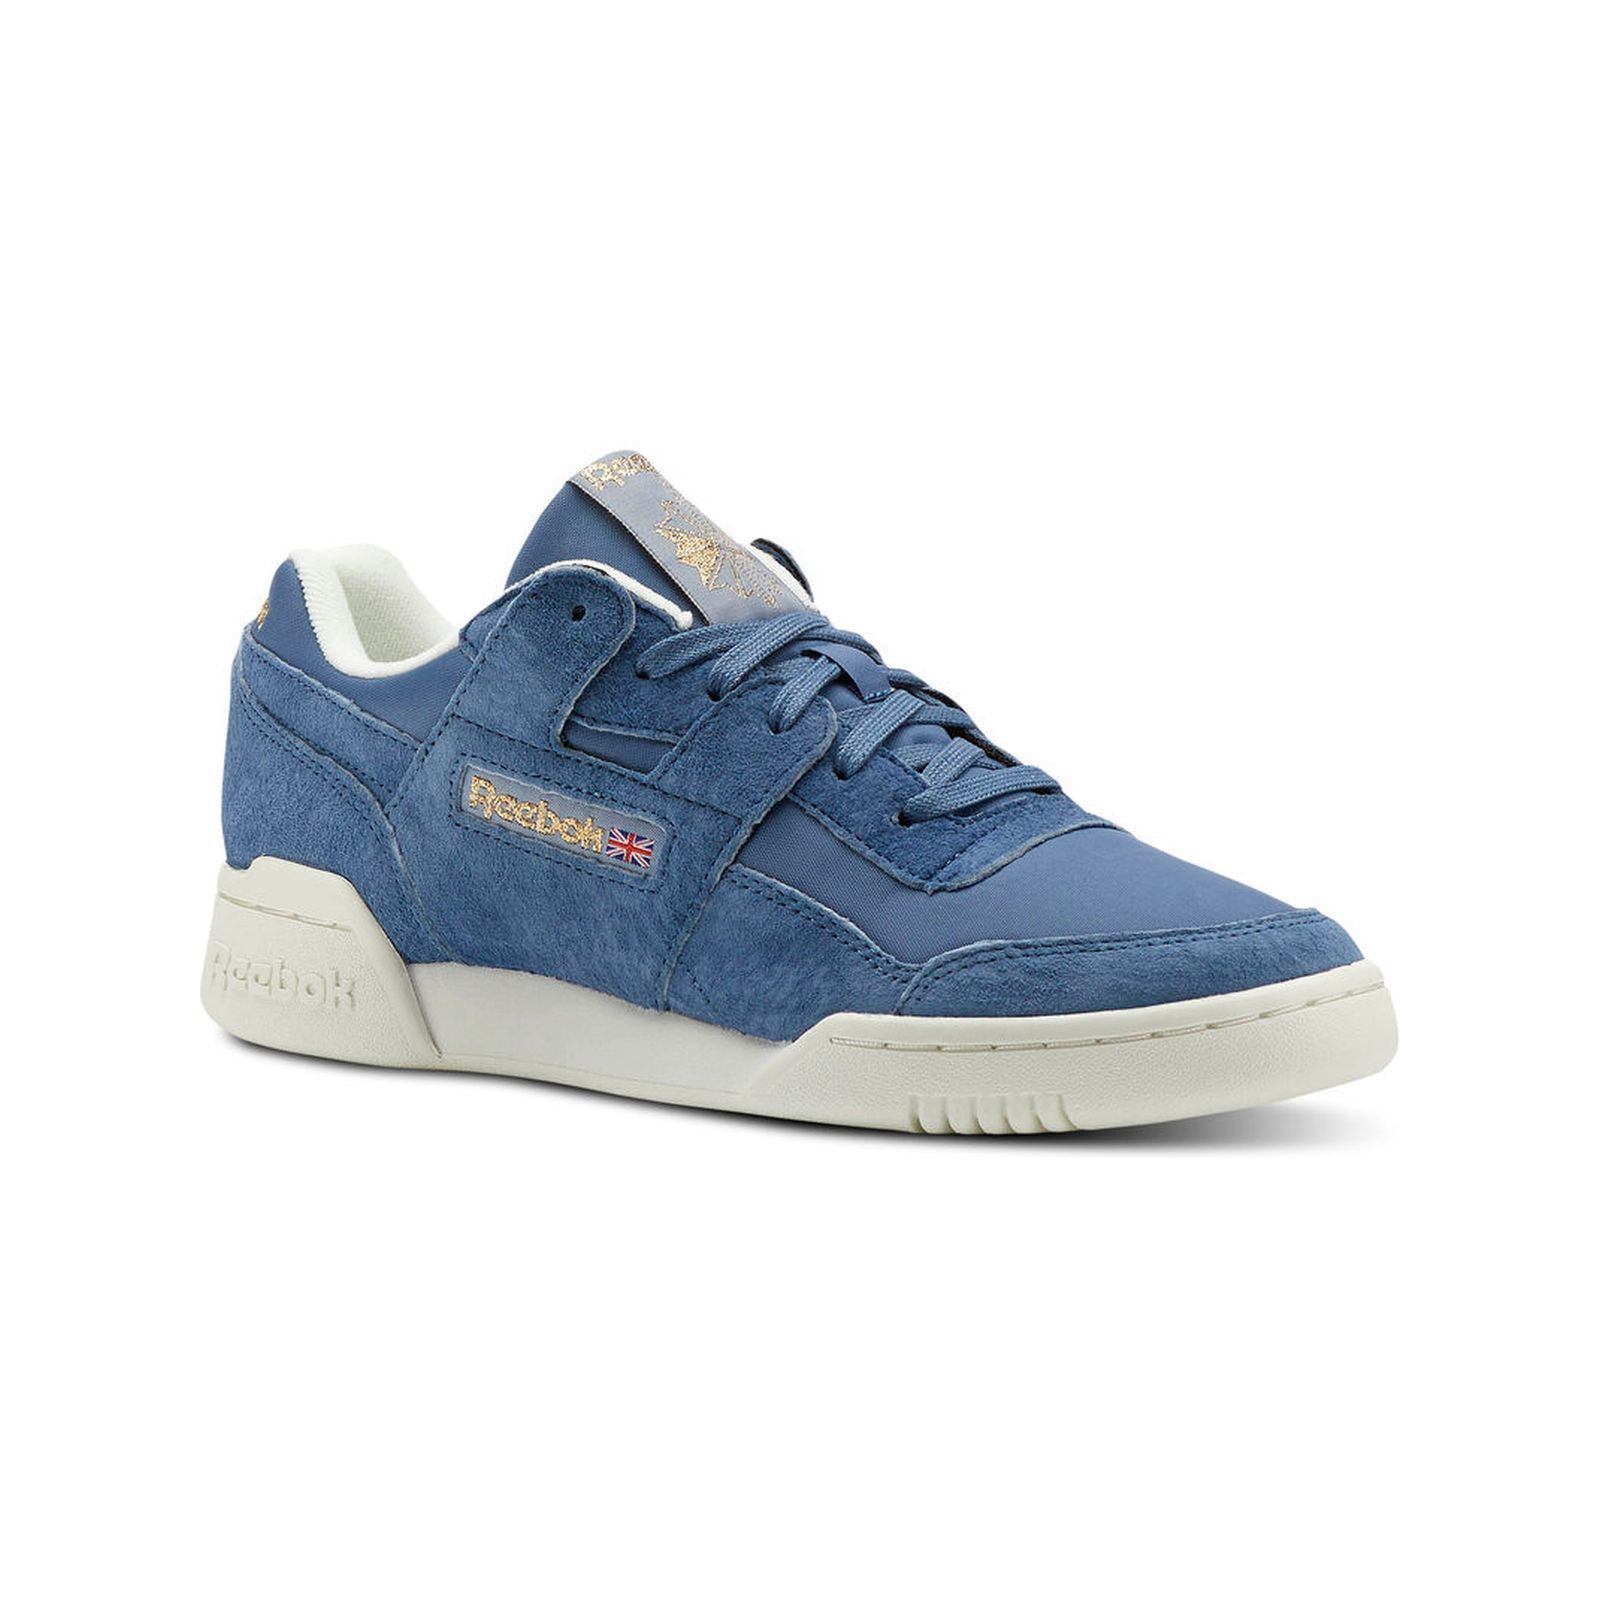 3622b01577c Reebok Classics - Workout Lo Plus - Baskets - ardoise